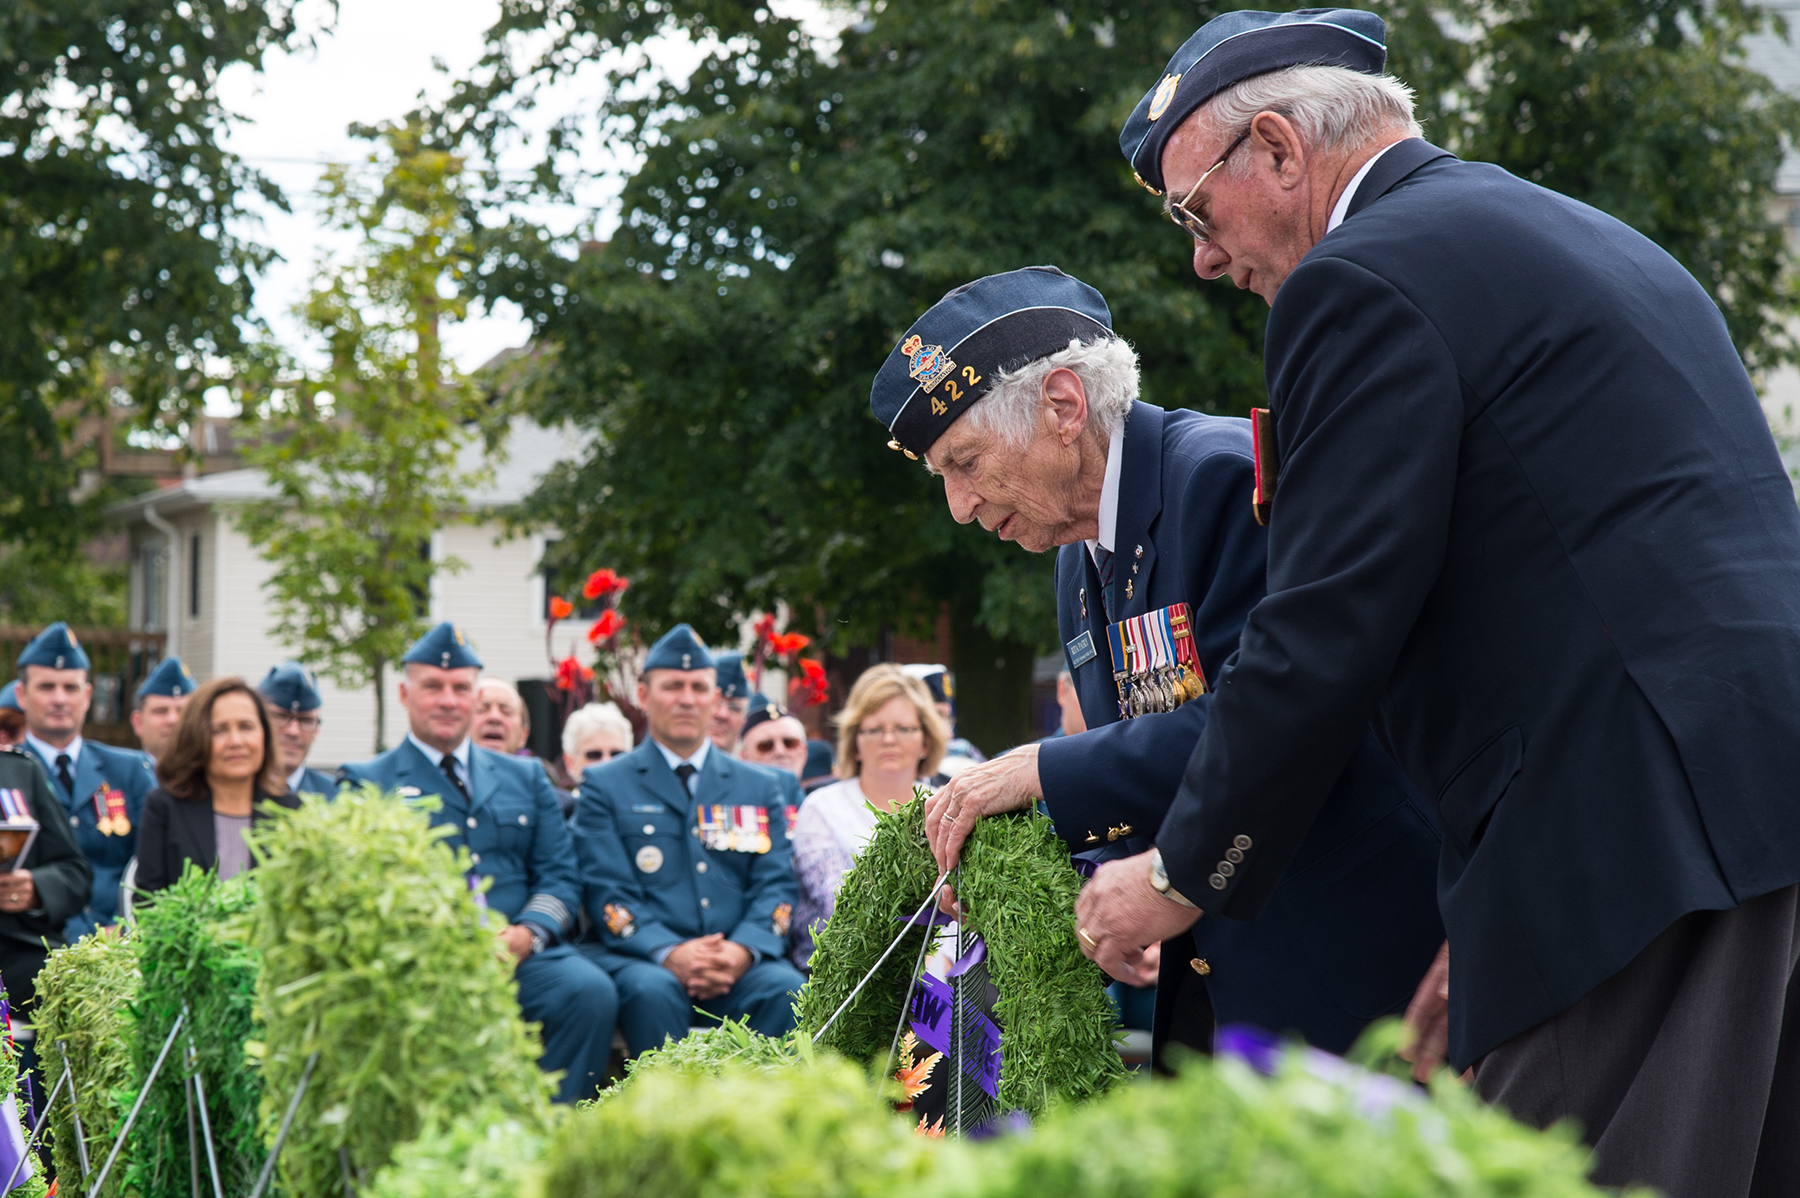 Rita Patry from 422 Squadron lays a wreath at the Memorial Monuments in North Bay, Ontario, during the 22 Wing North Bay ceremony marking the 76th anniversary of the Battle of Britain at Royal Canadian Legion Branch #23 on September 18, 2016. PHOTO: Corporal Rob Ouellette, NB01-2016-0124-020